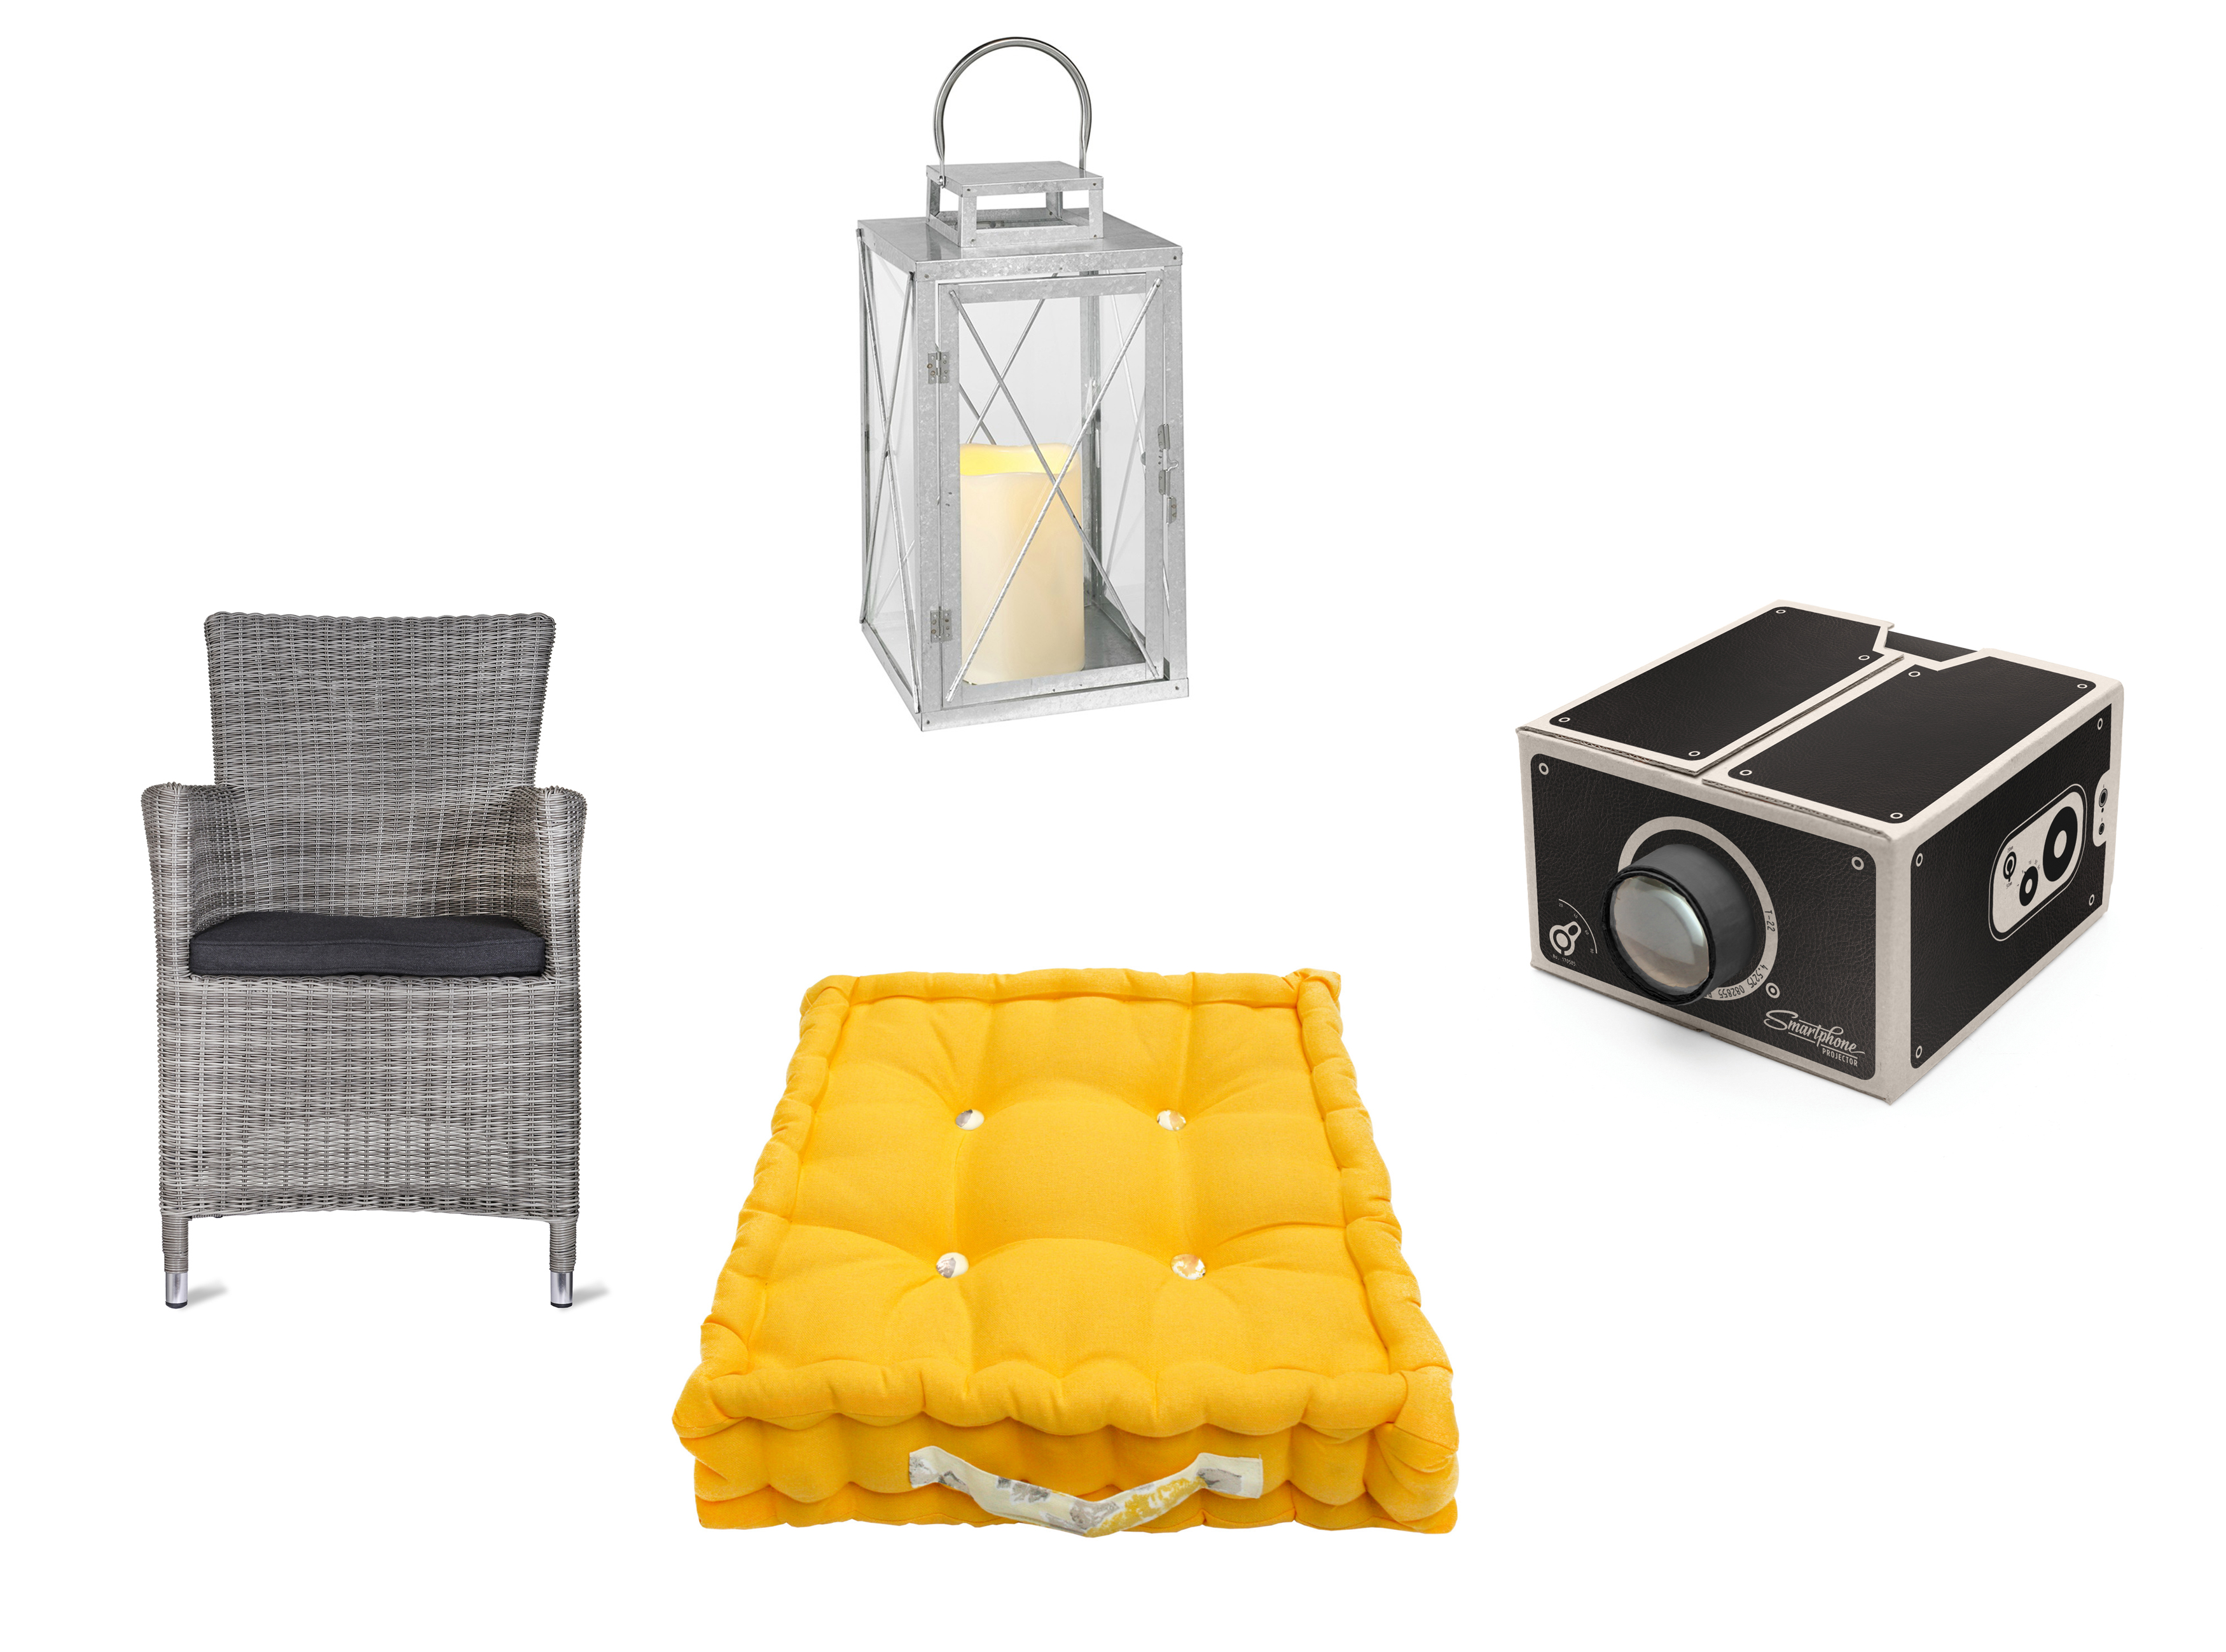 Film finds: (Clockwise from left) Driffield All-weather Rattan Chair, £170, Garden Trading; St Austell Battery Outdoor Lantern, £29.99, Lights4Fun; Smartphone Projector, £15.99, Prezzybox; Jacky Golden Yellow Garden Floor Cushion, £35, Ragged Rose (Garden Trading/Lights4Fun/Prezzybox/Ragged Rose/PA)